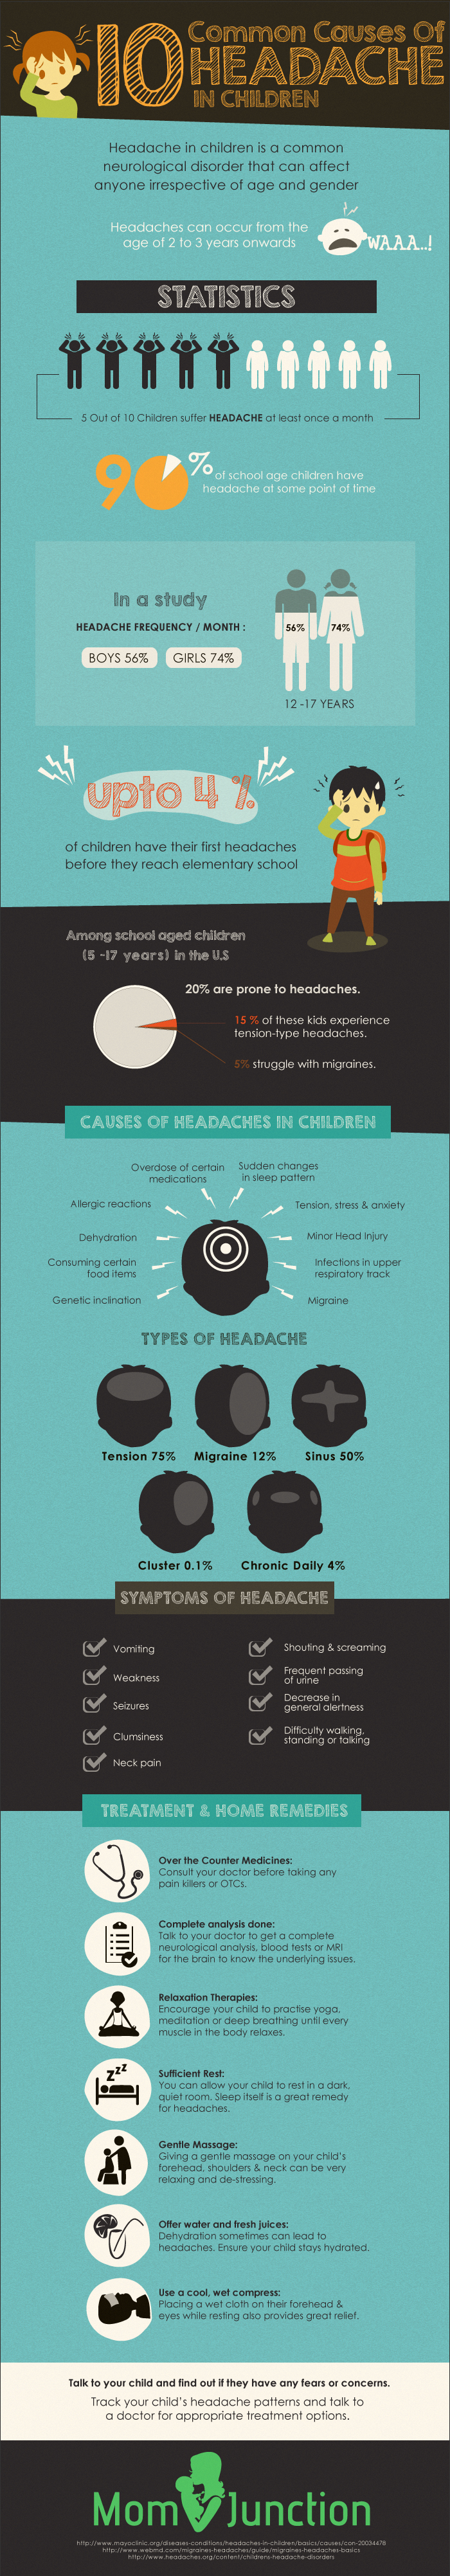 Causes & Treatments For Headache In Children